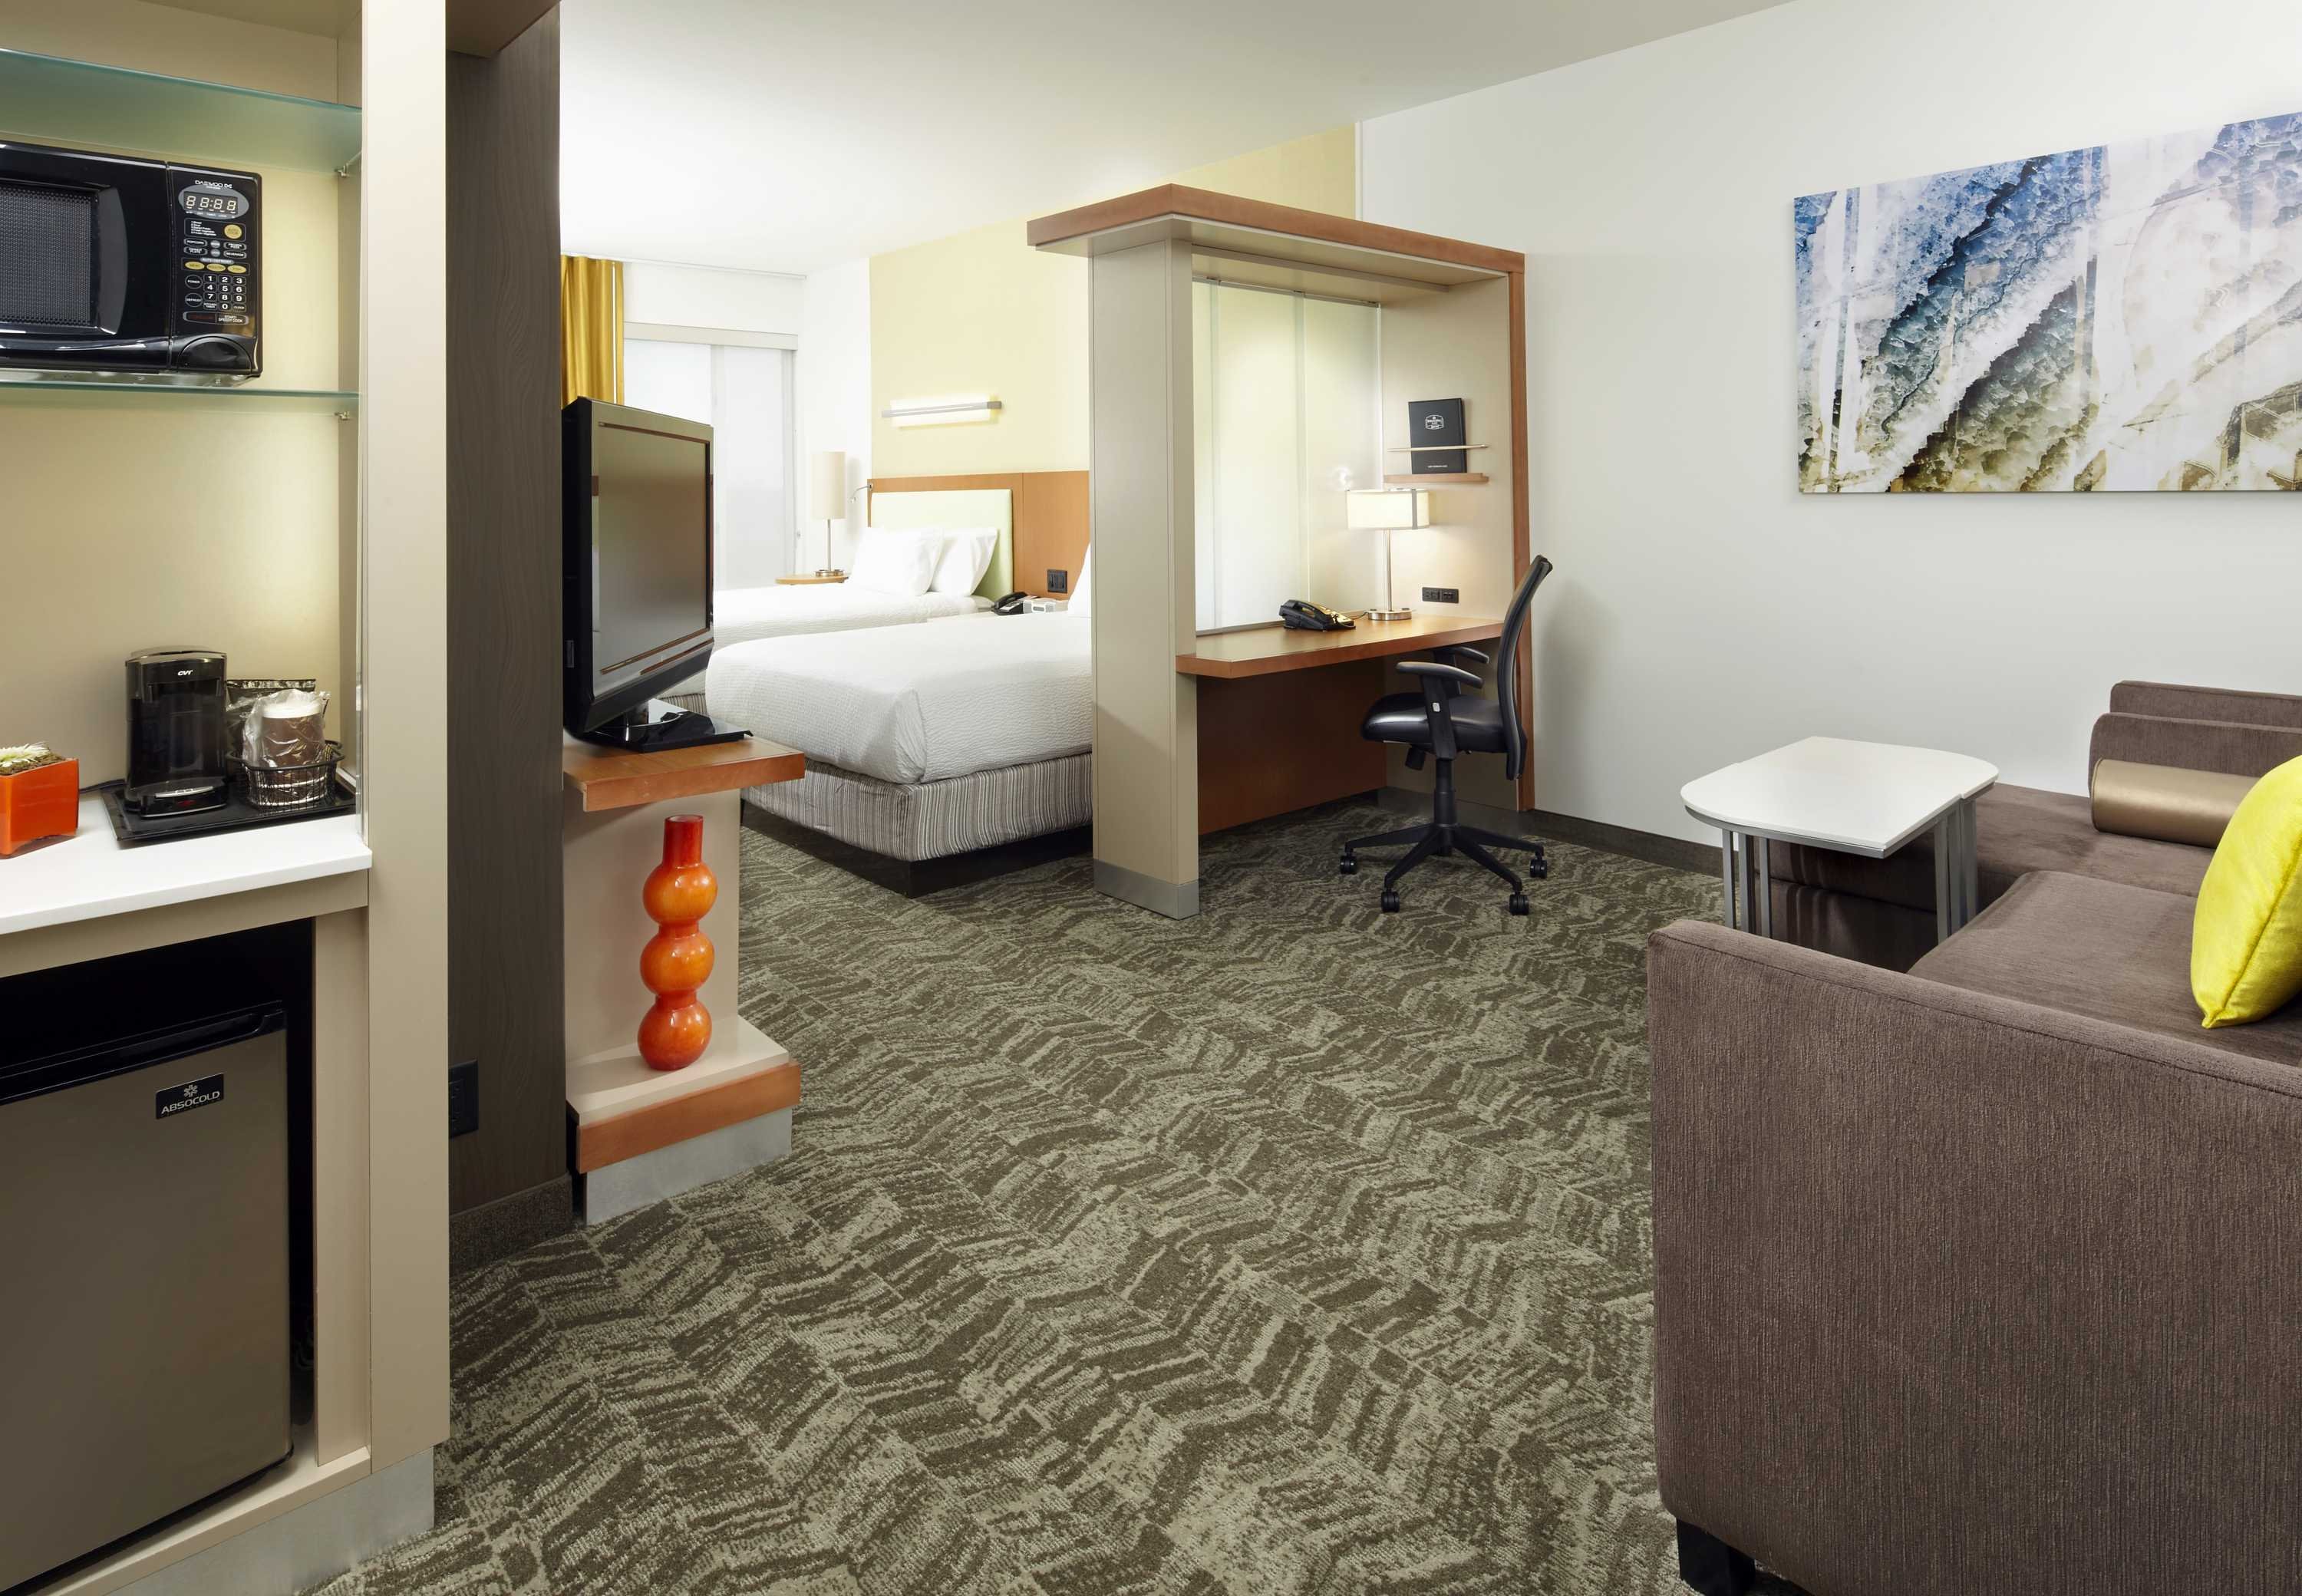 SpringHill Suites by Marriott Chicago Waukegan/Gurnee image 4